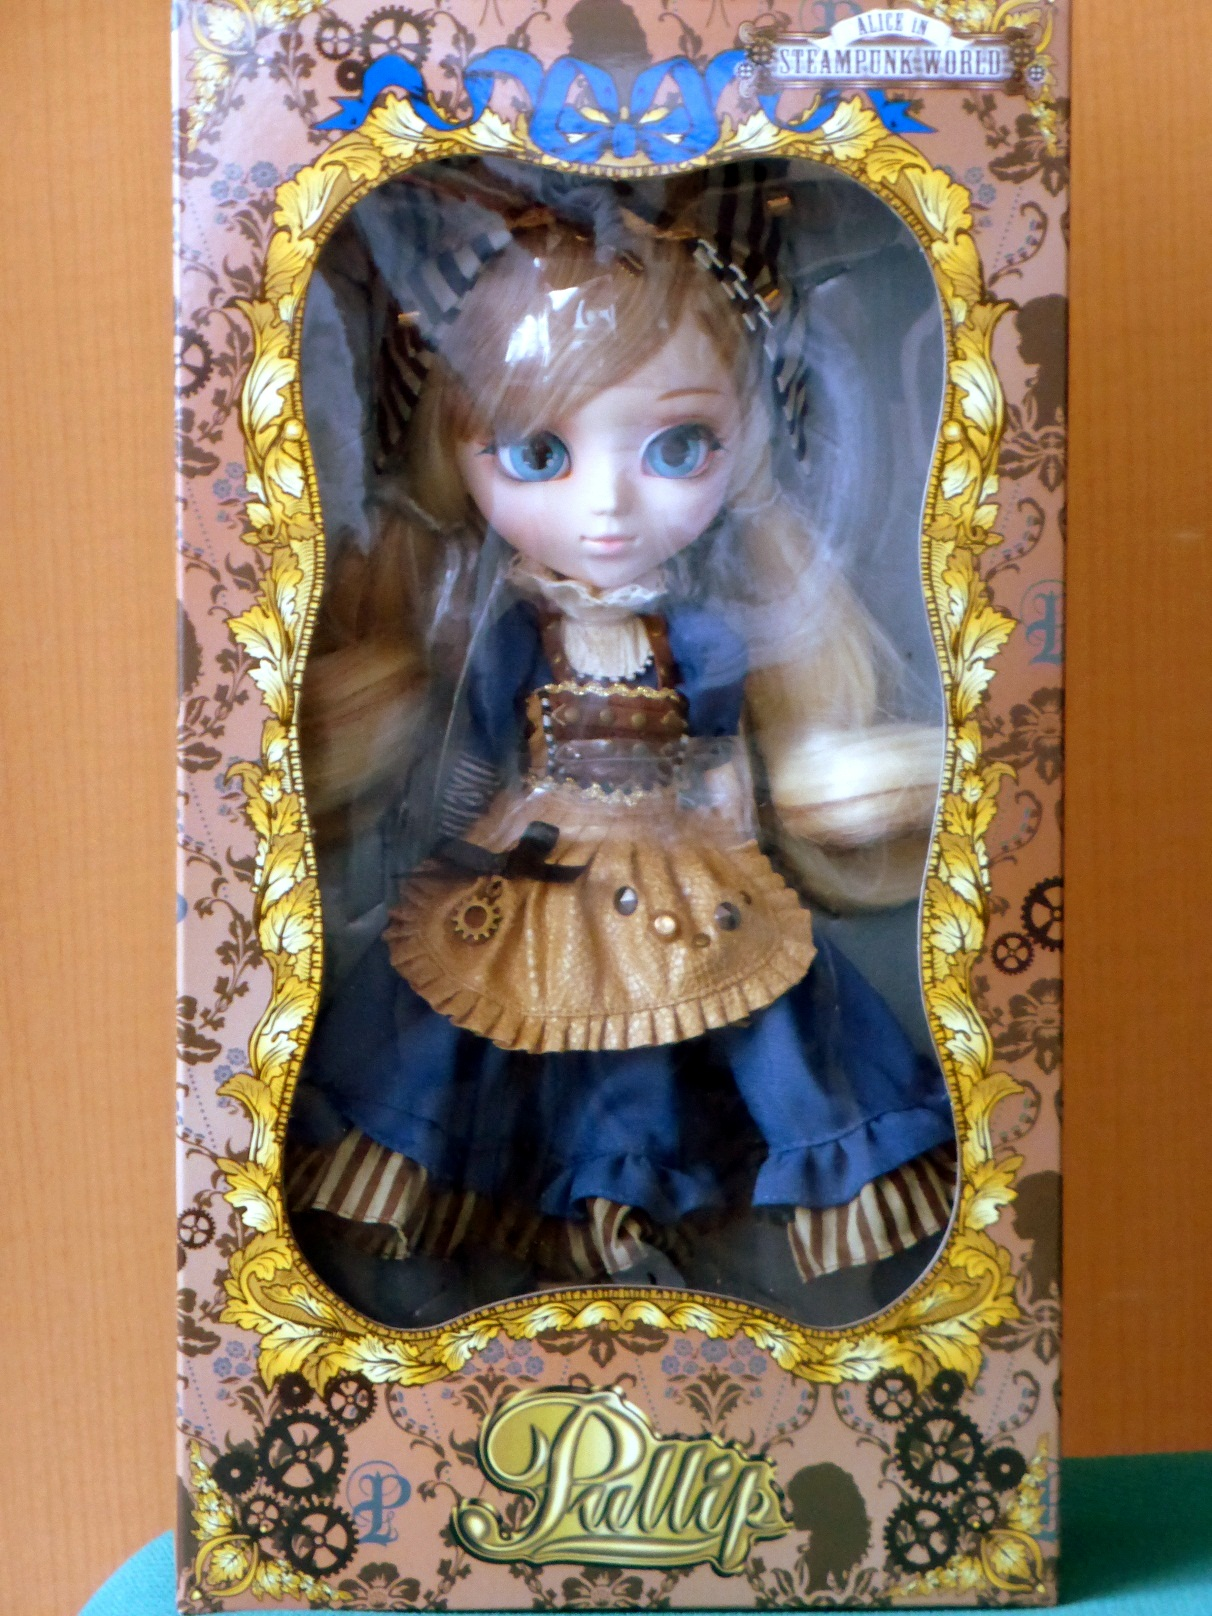 [Juin 2015] Pullip Alice in Steampunk World - Page 2 P-151_4